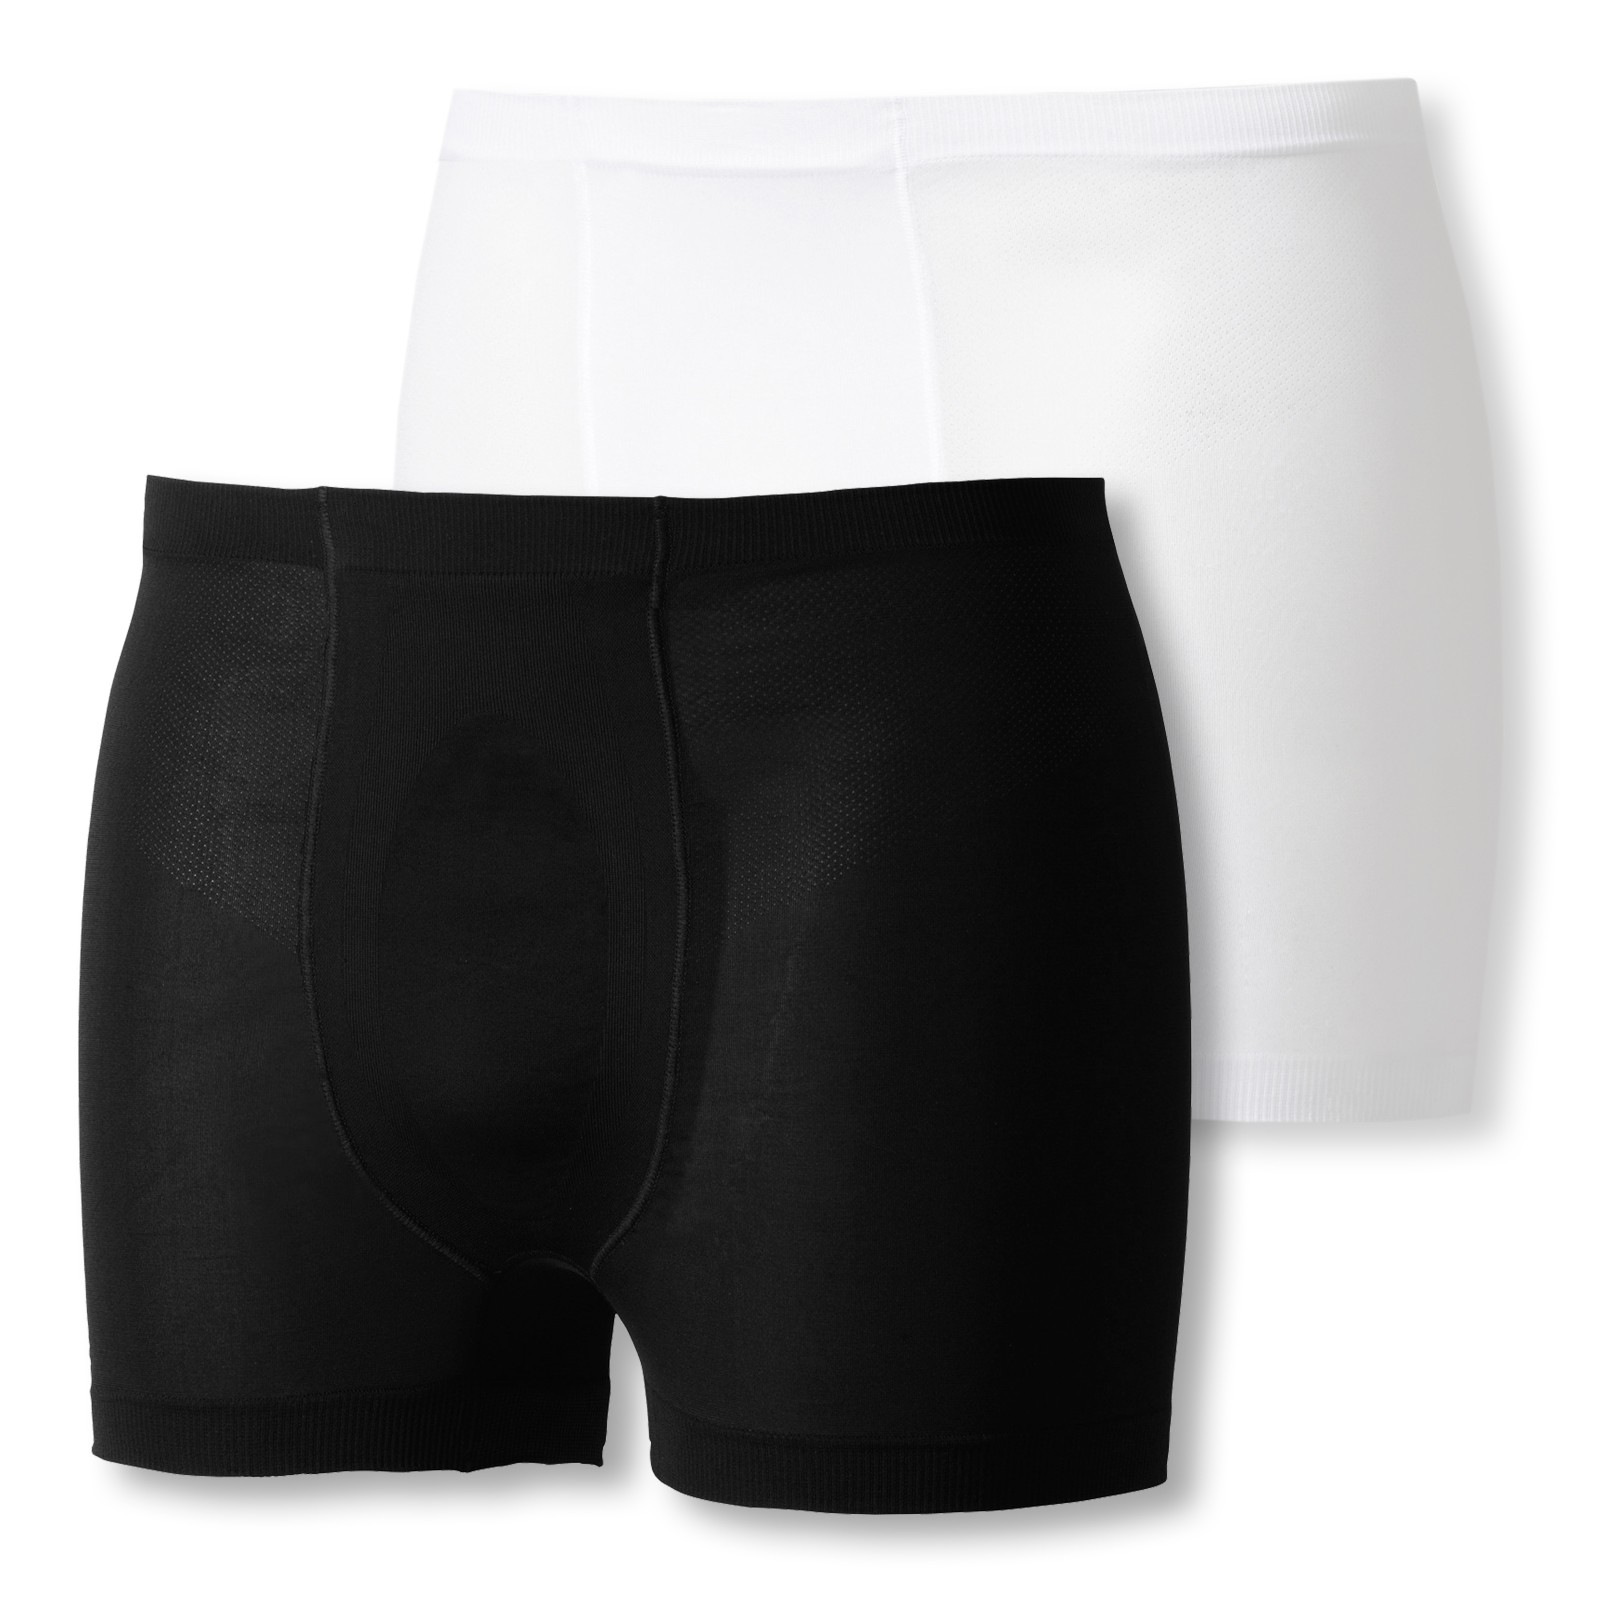 Odlo Herren Unterhose Sportswear Brief Evolution X-Light